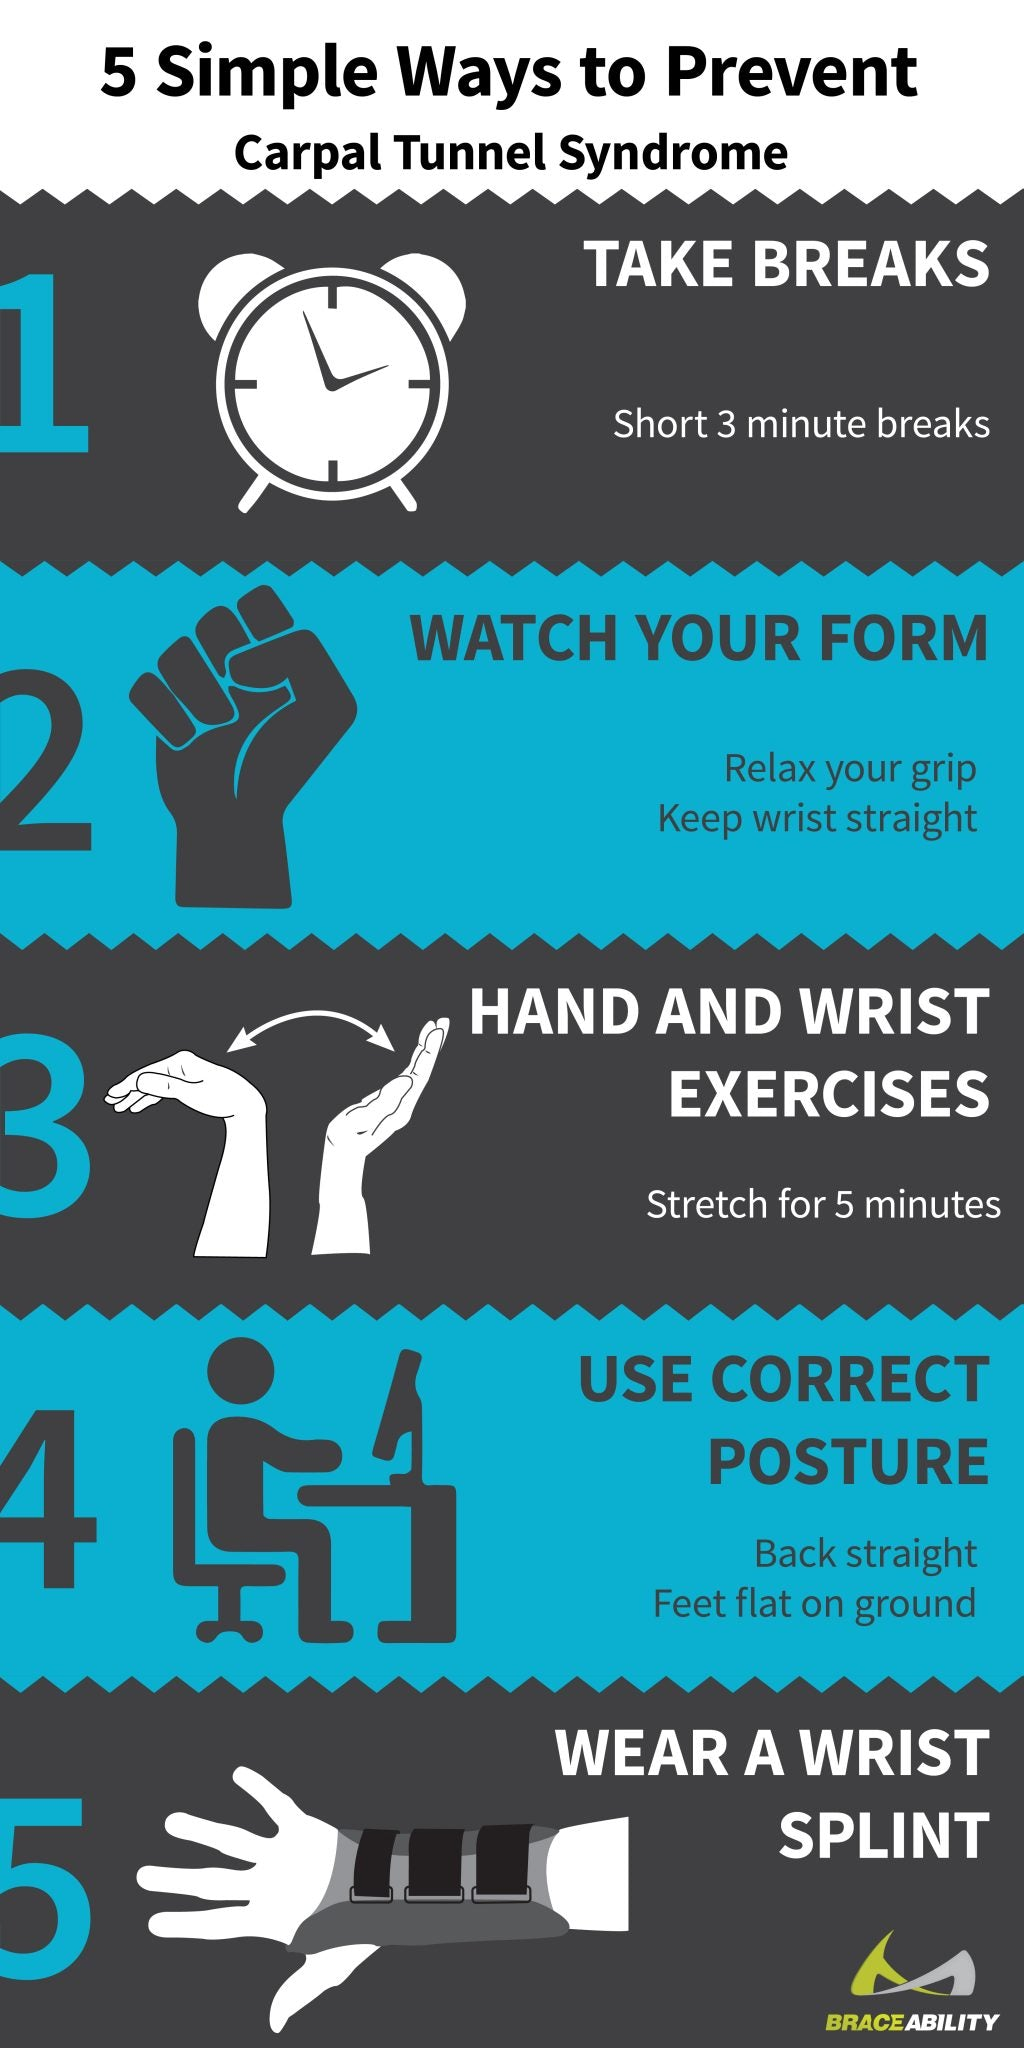 Use this infographic to practice healthy wrist movement and prevent carpal tunnel syndrome